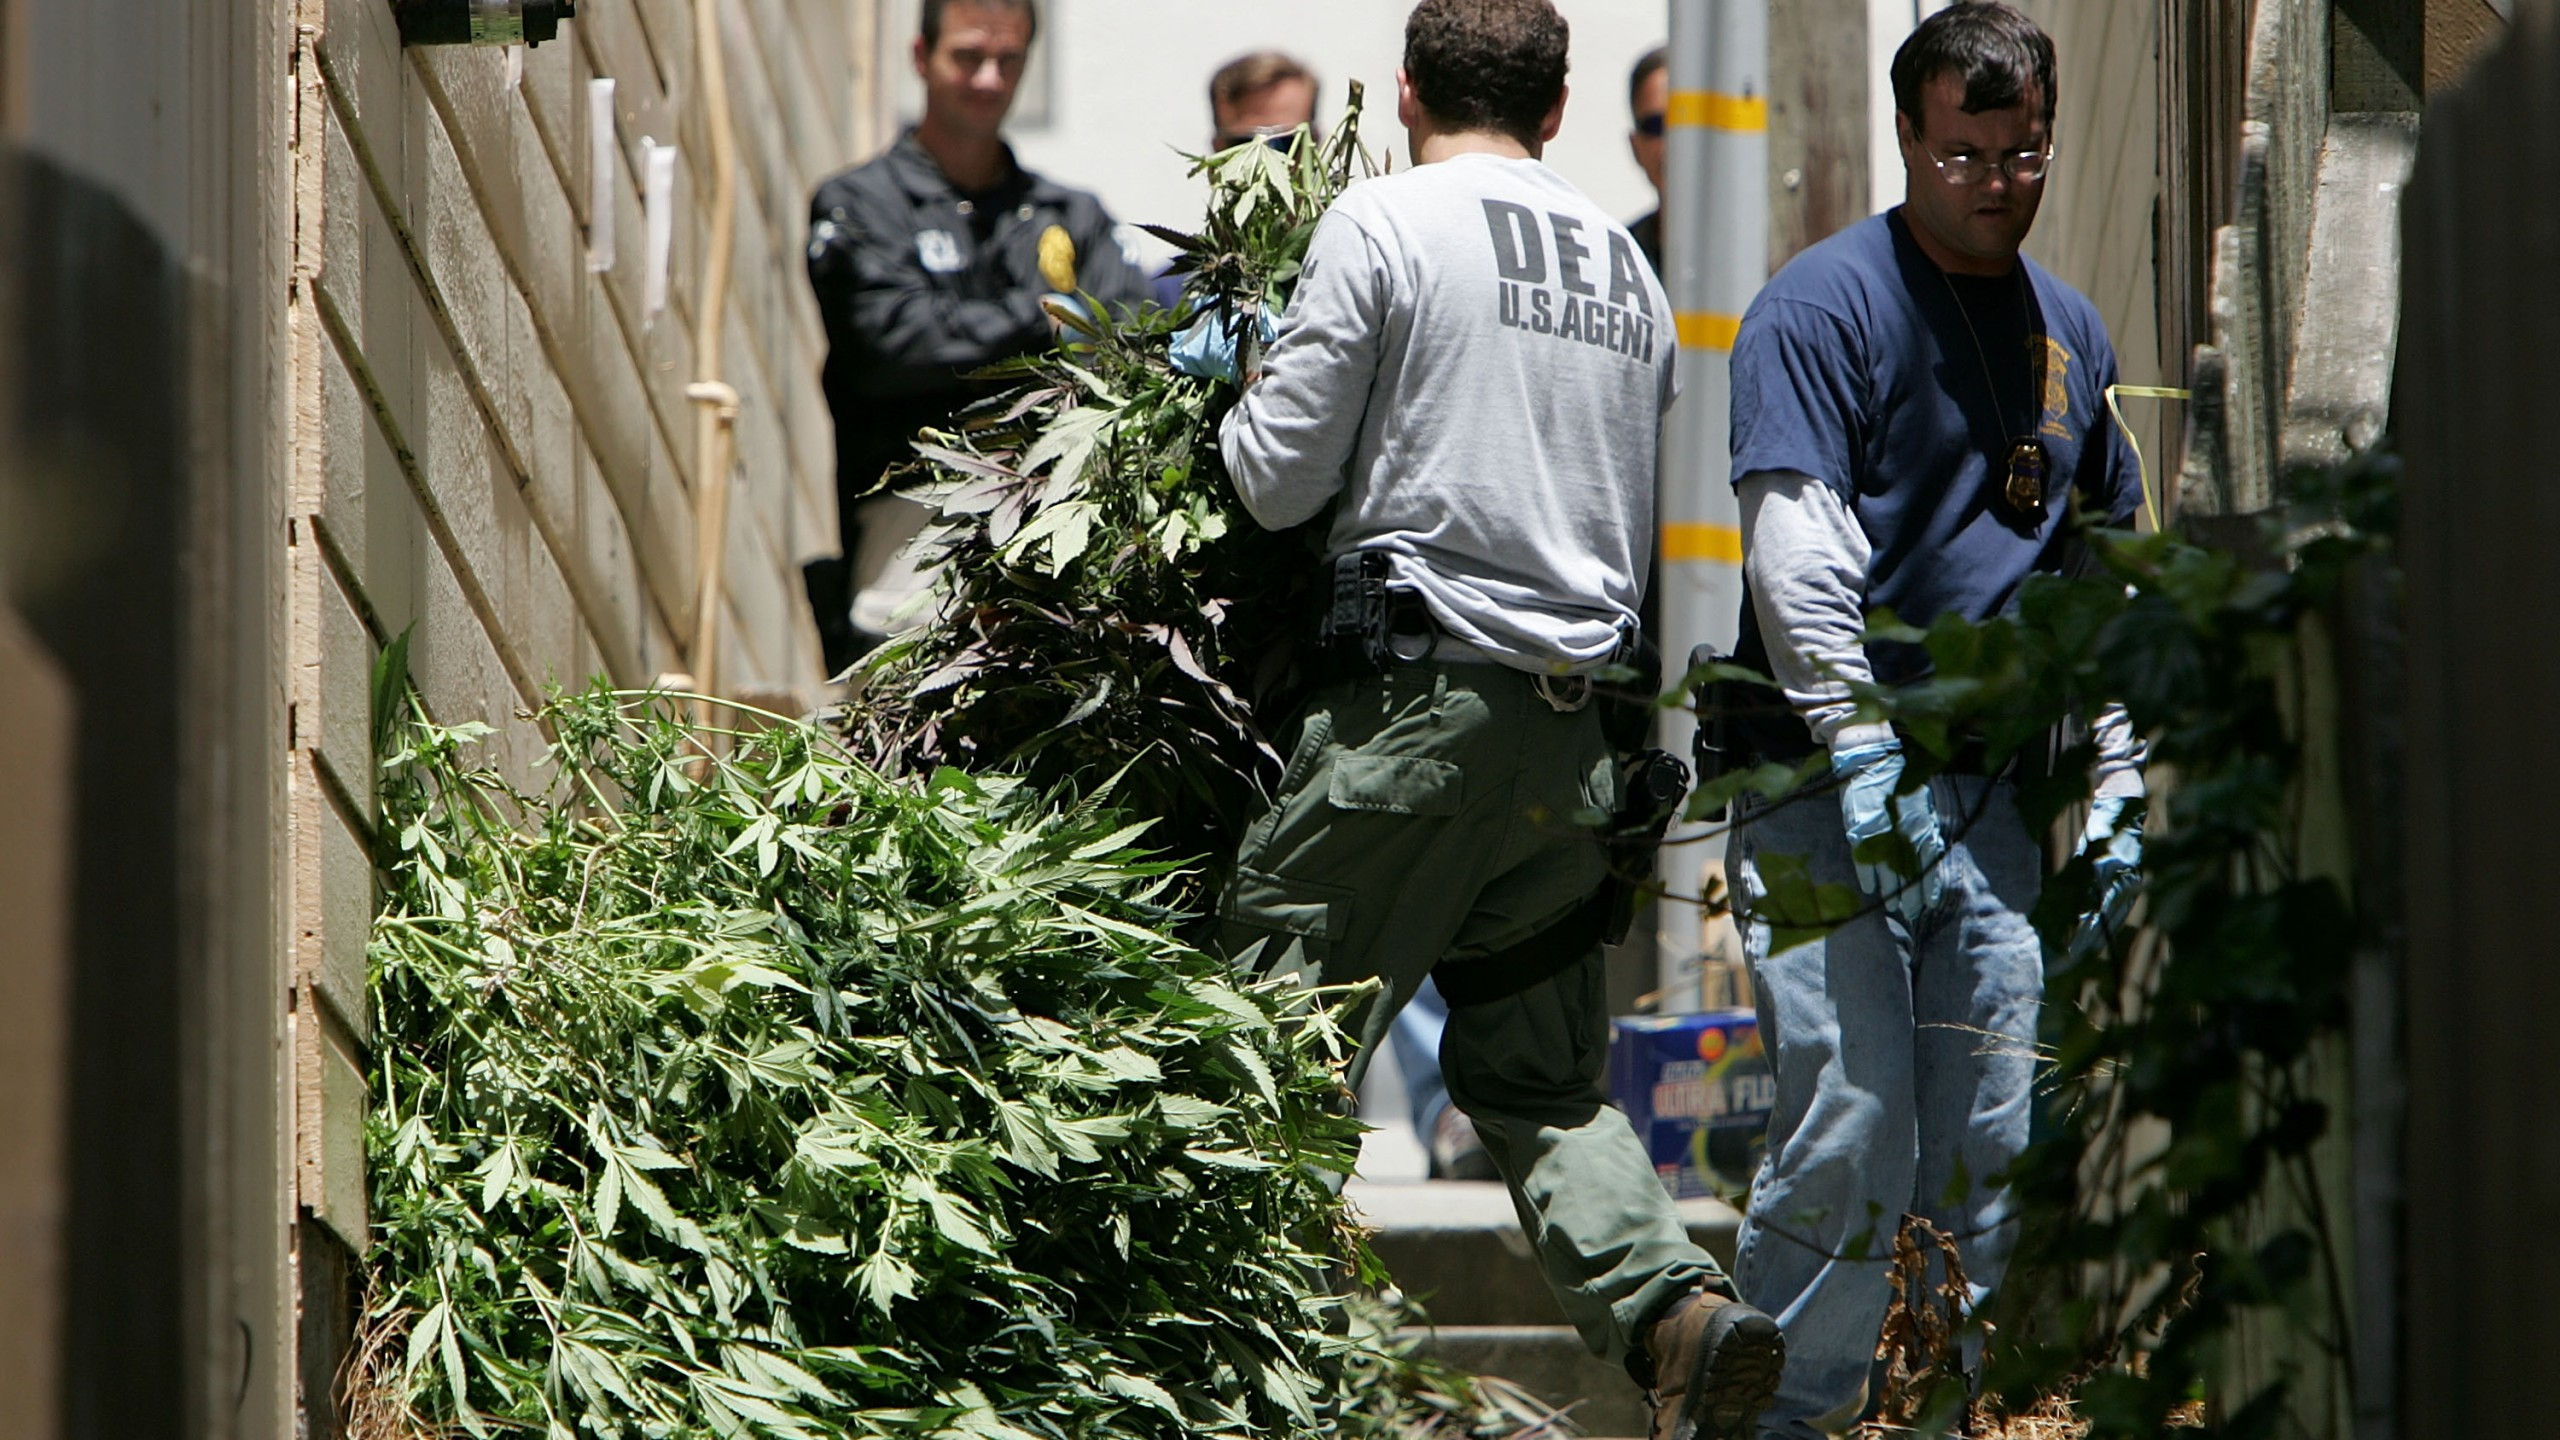 A U.S. Drug Enforcement Administration agent carries a pile of marijuana plants seized during a raid of a medical marijuana club June 22, 2005, in San Francisco. (Credit: Justin Sullivan/Getty Images)